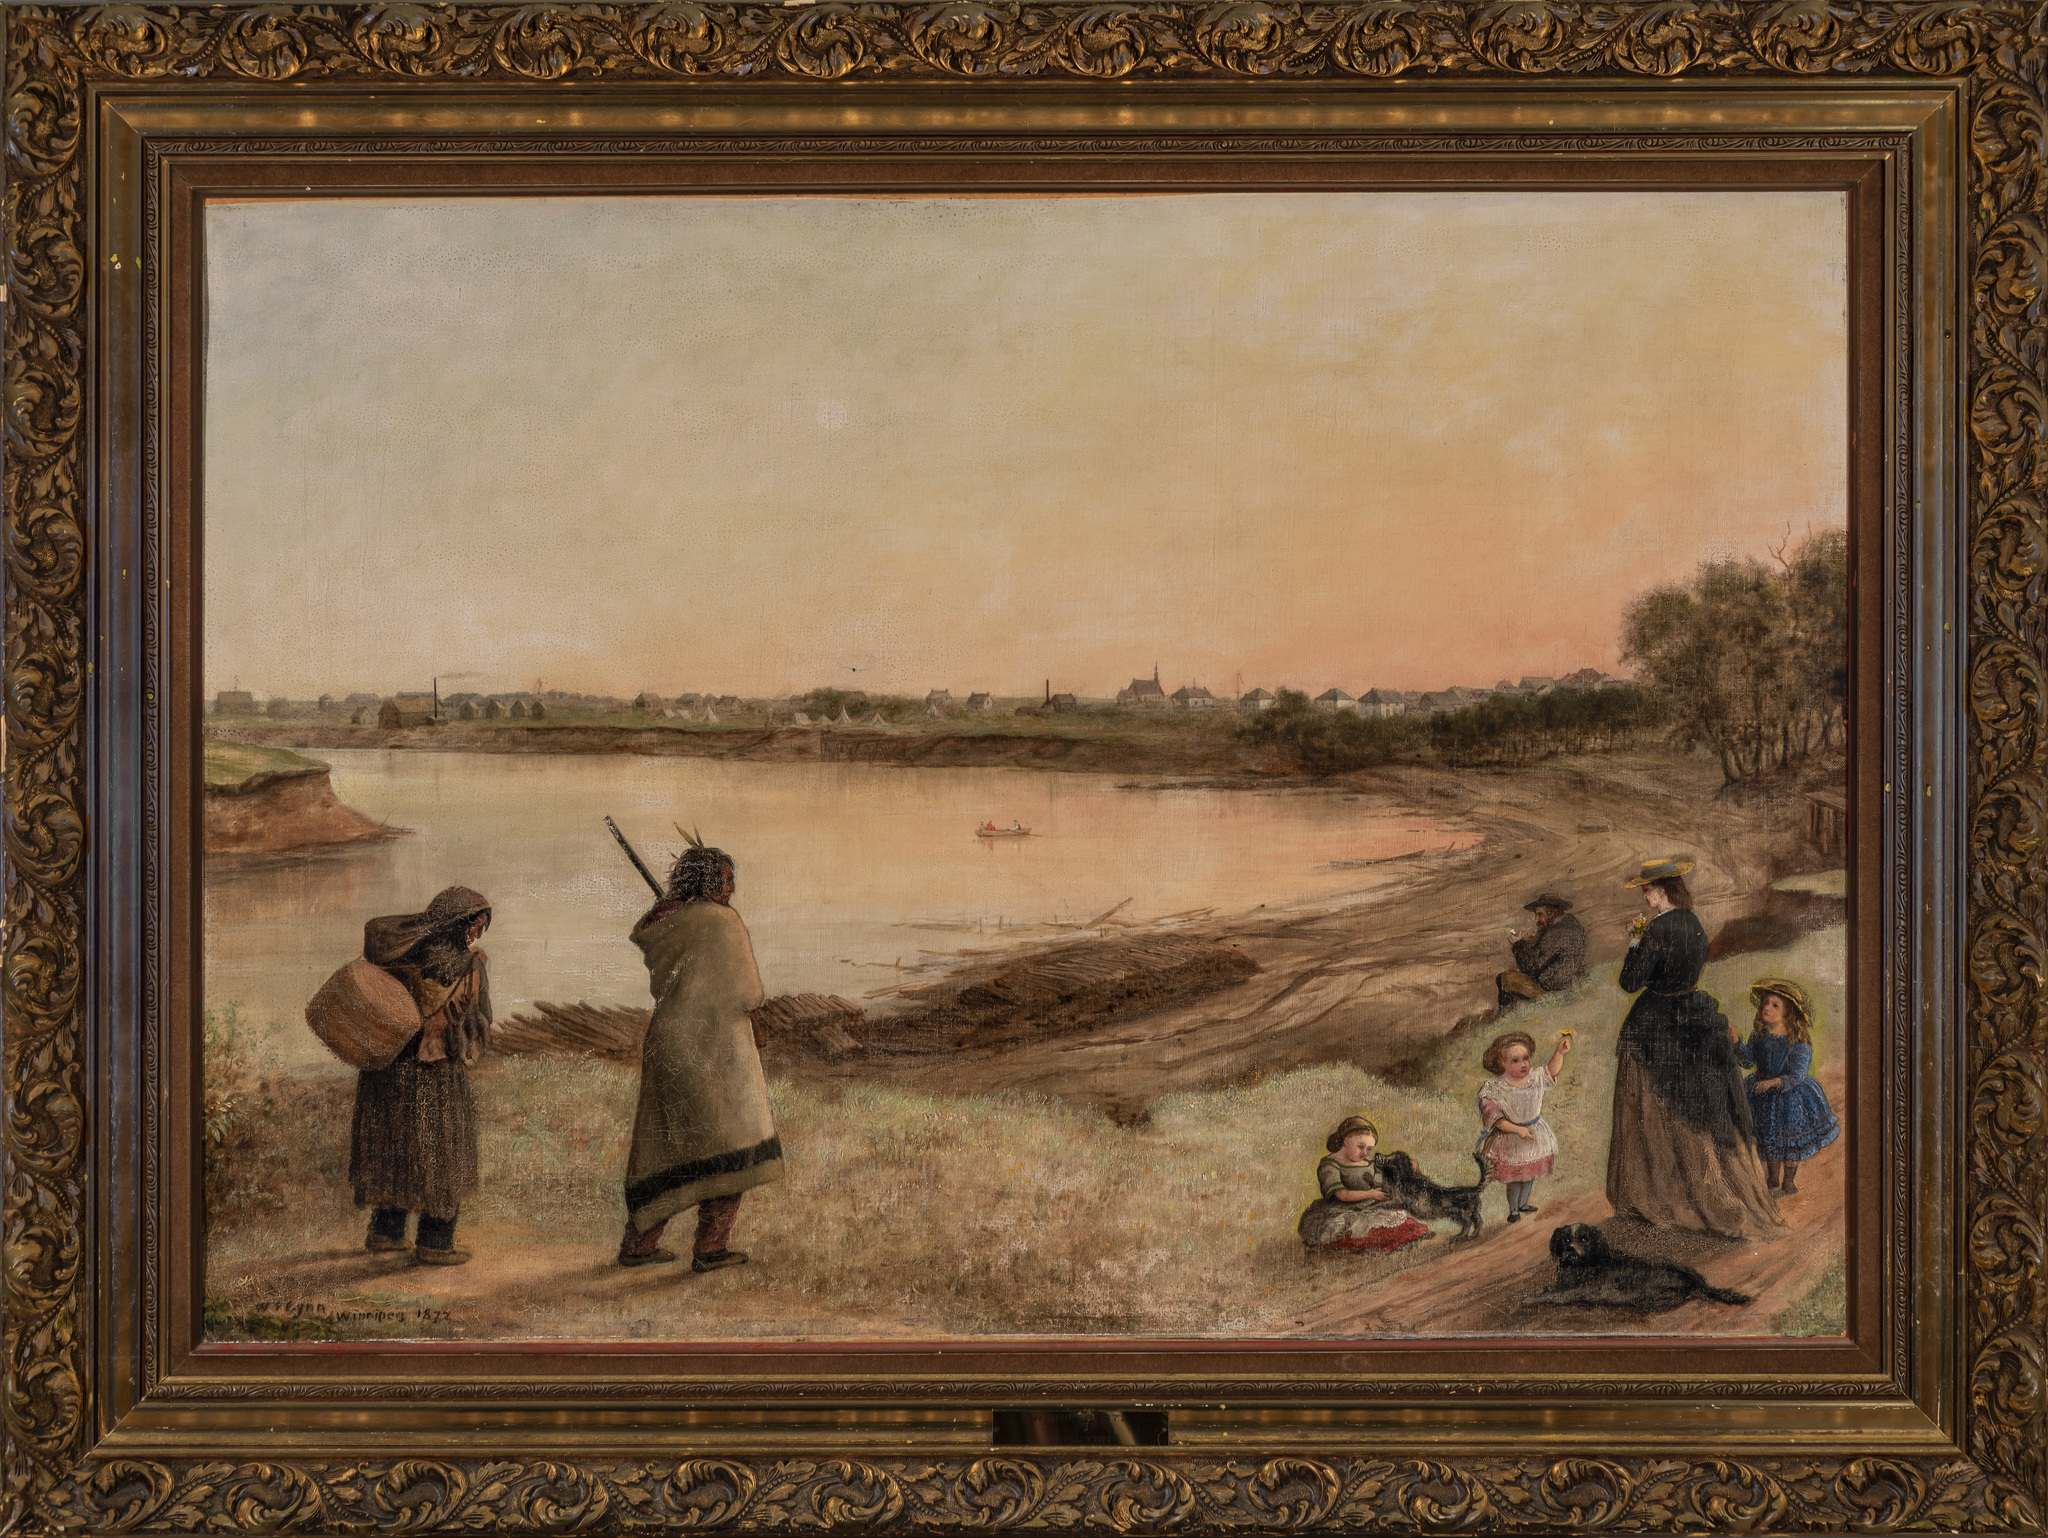 Ernest Mayer, courtesy of the Winnipeg Art Gallery</p><p>W. Frank Lynn's Two Families (1872) oil on canvas. At the time of the treaty signing, tensions over land use were high between newcomers and First Nations.</p>